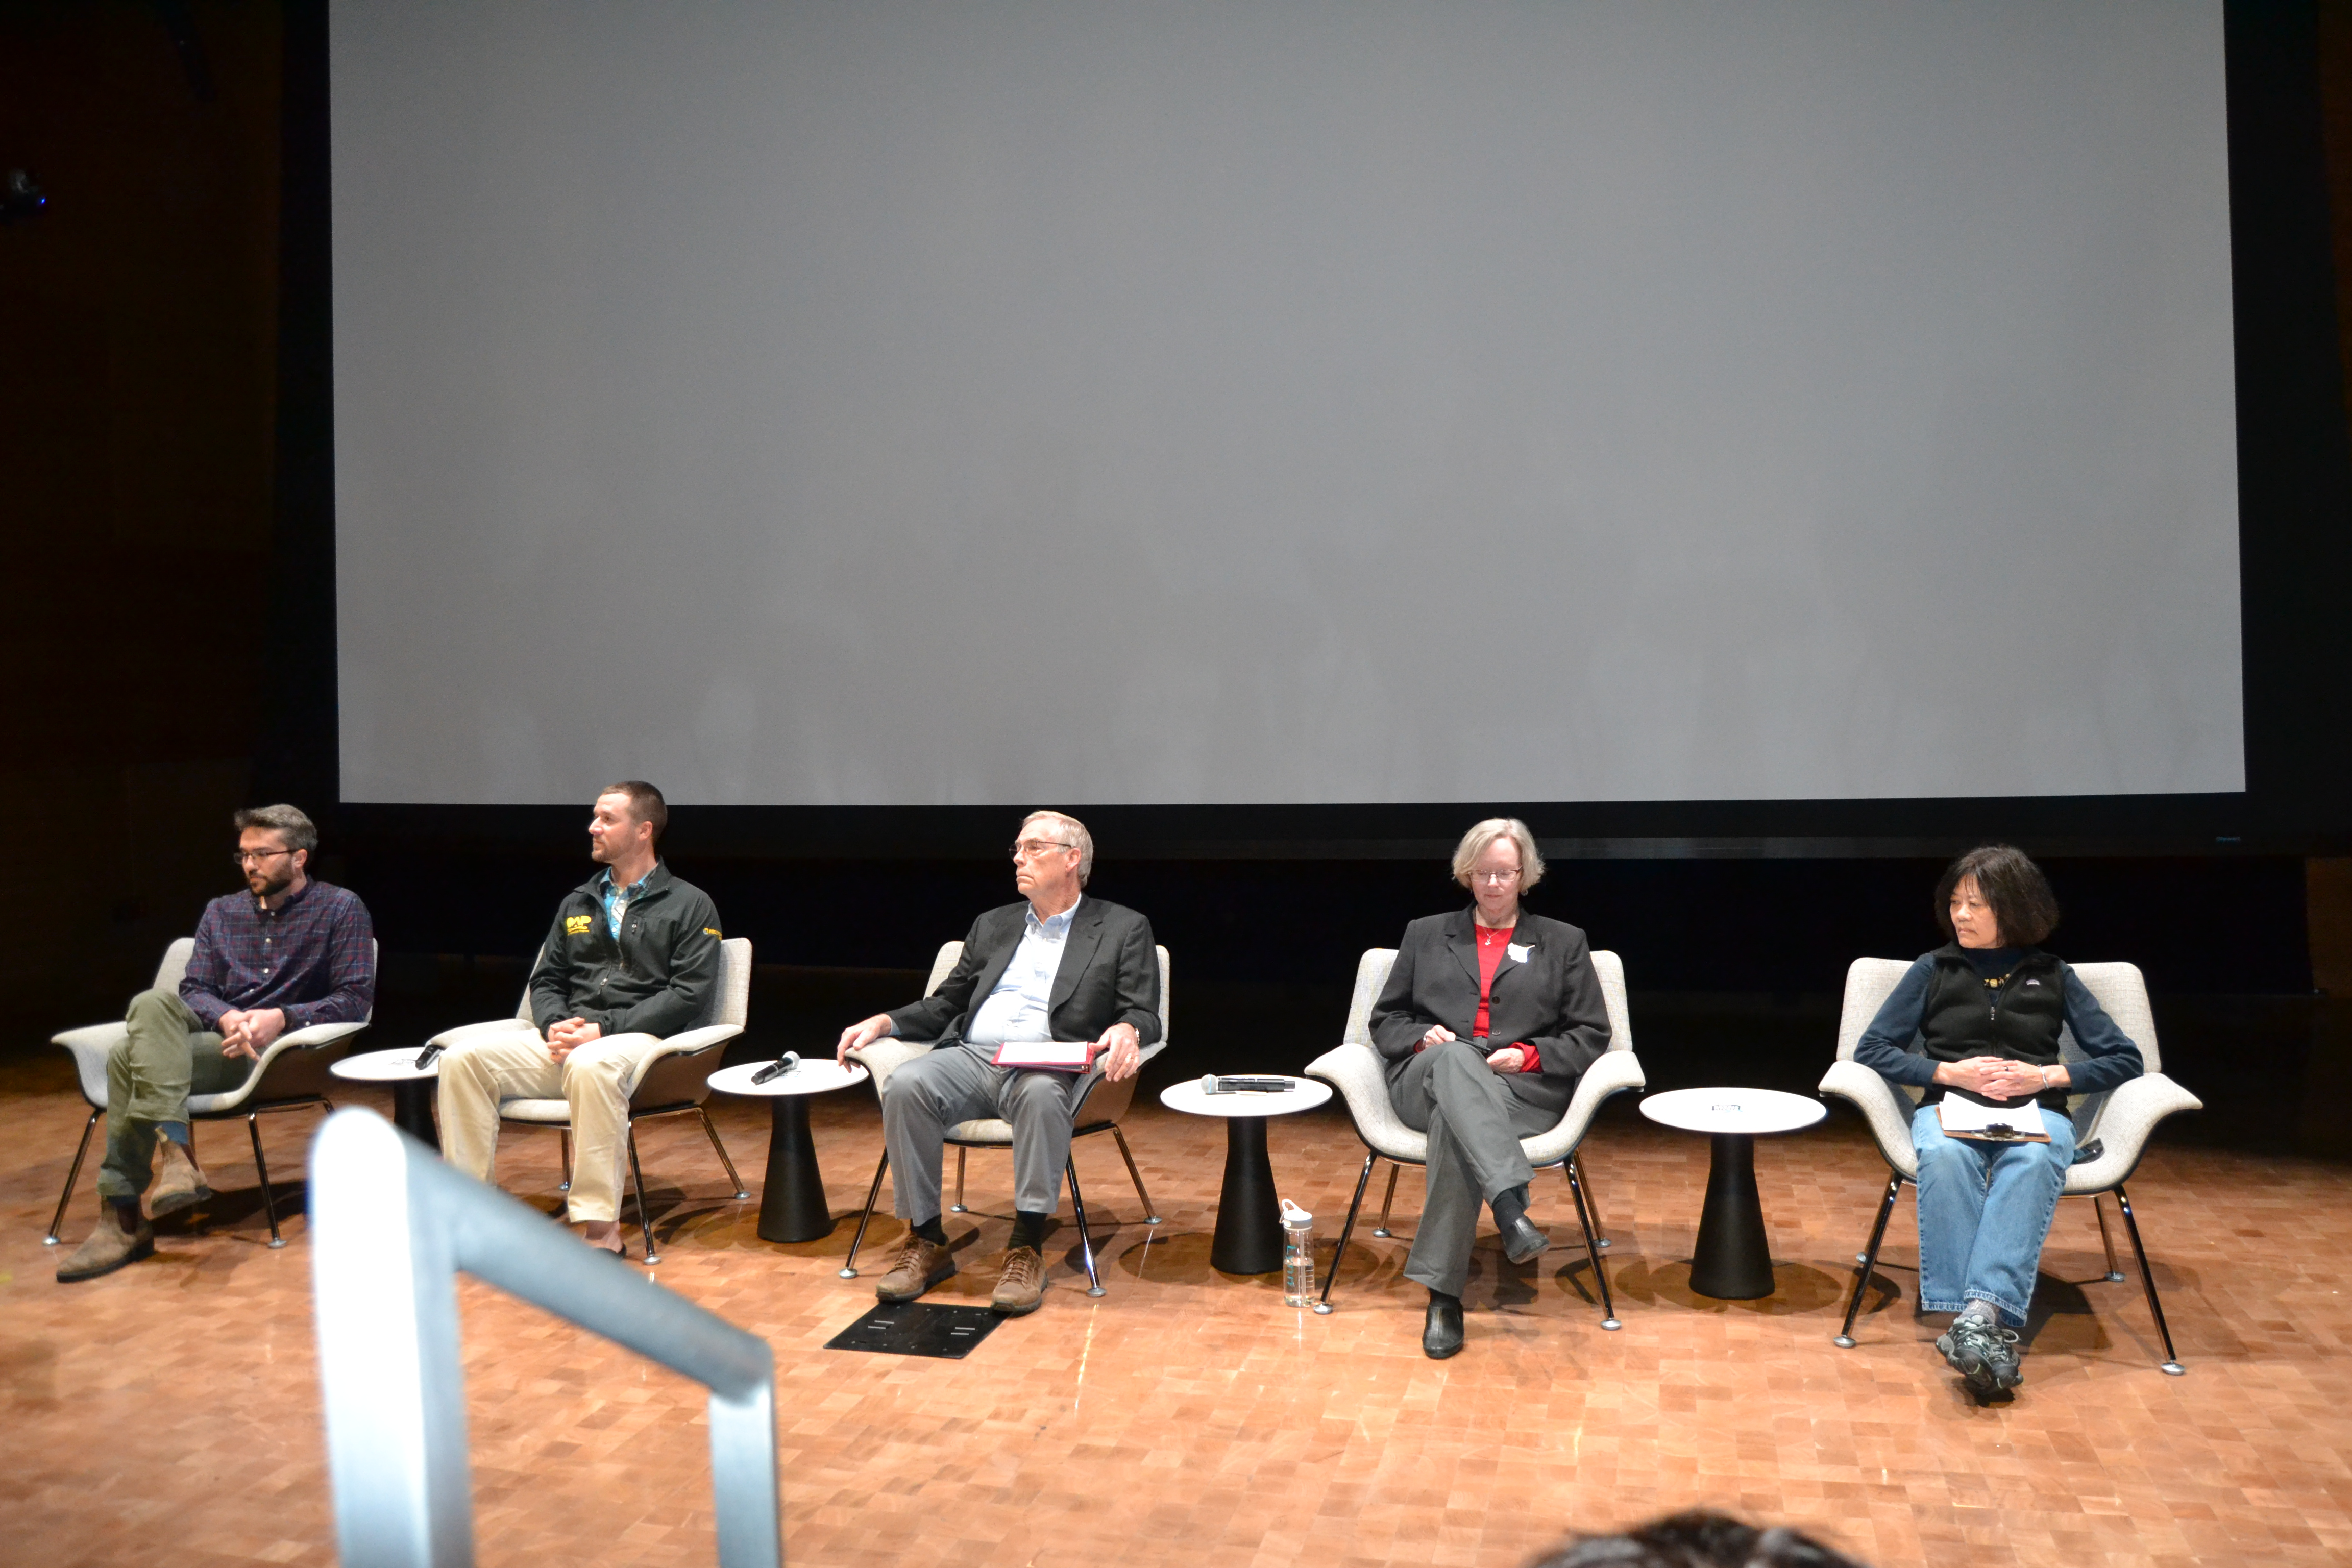 A panel of five experts are ready to take questions from the audience at the ICA